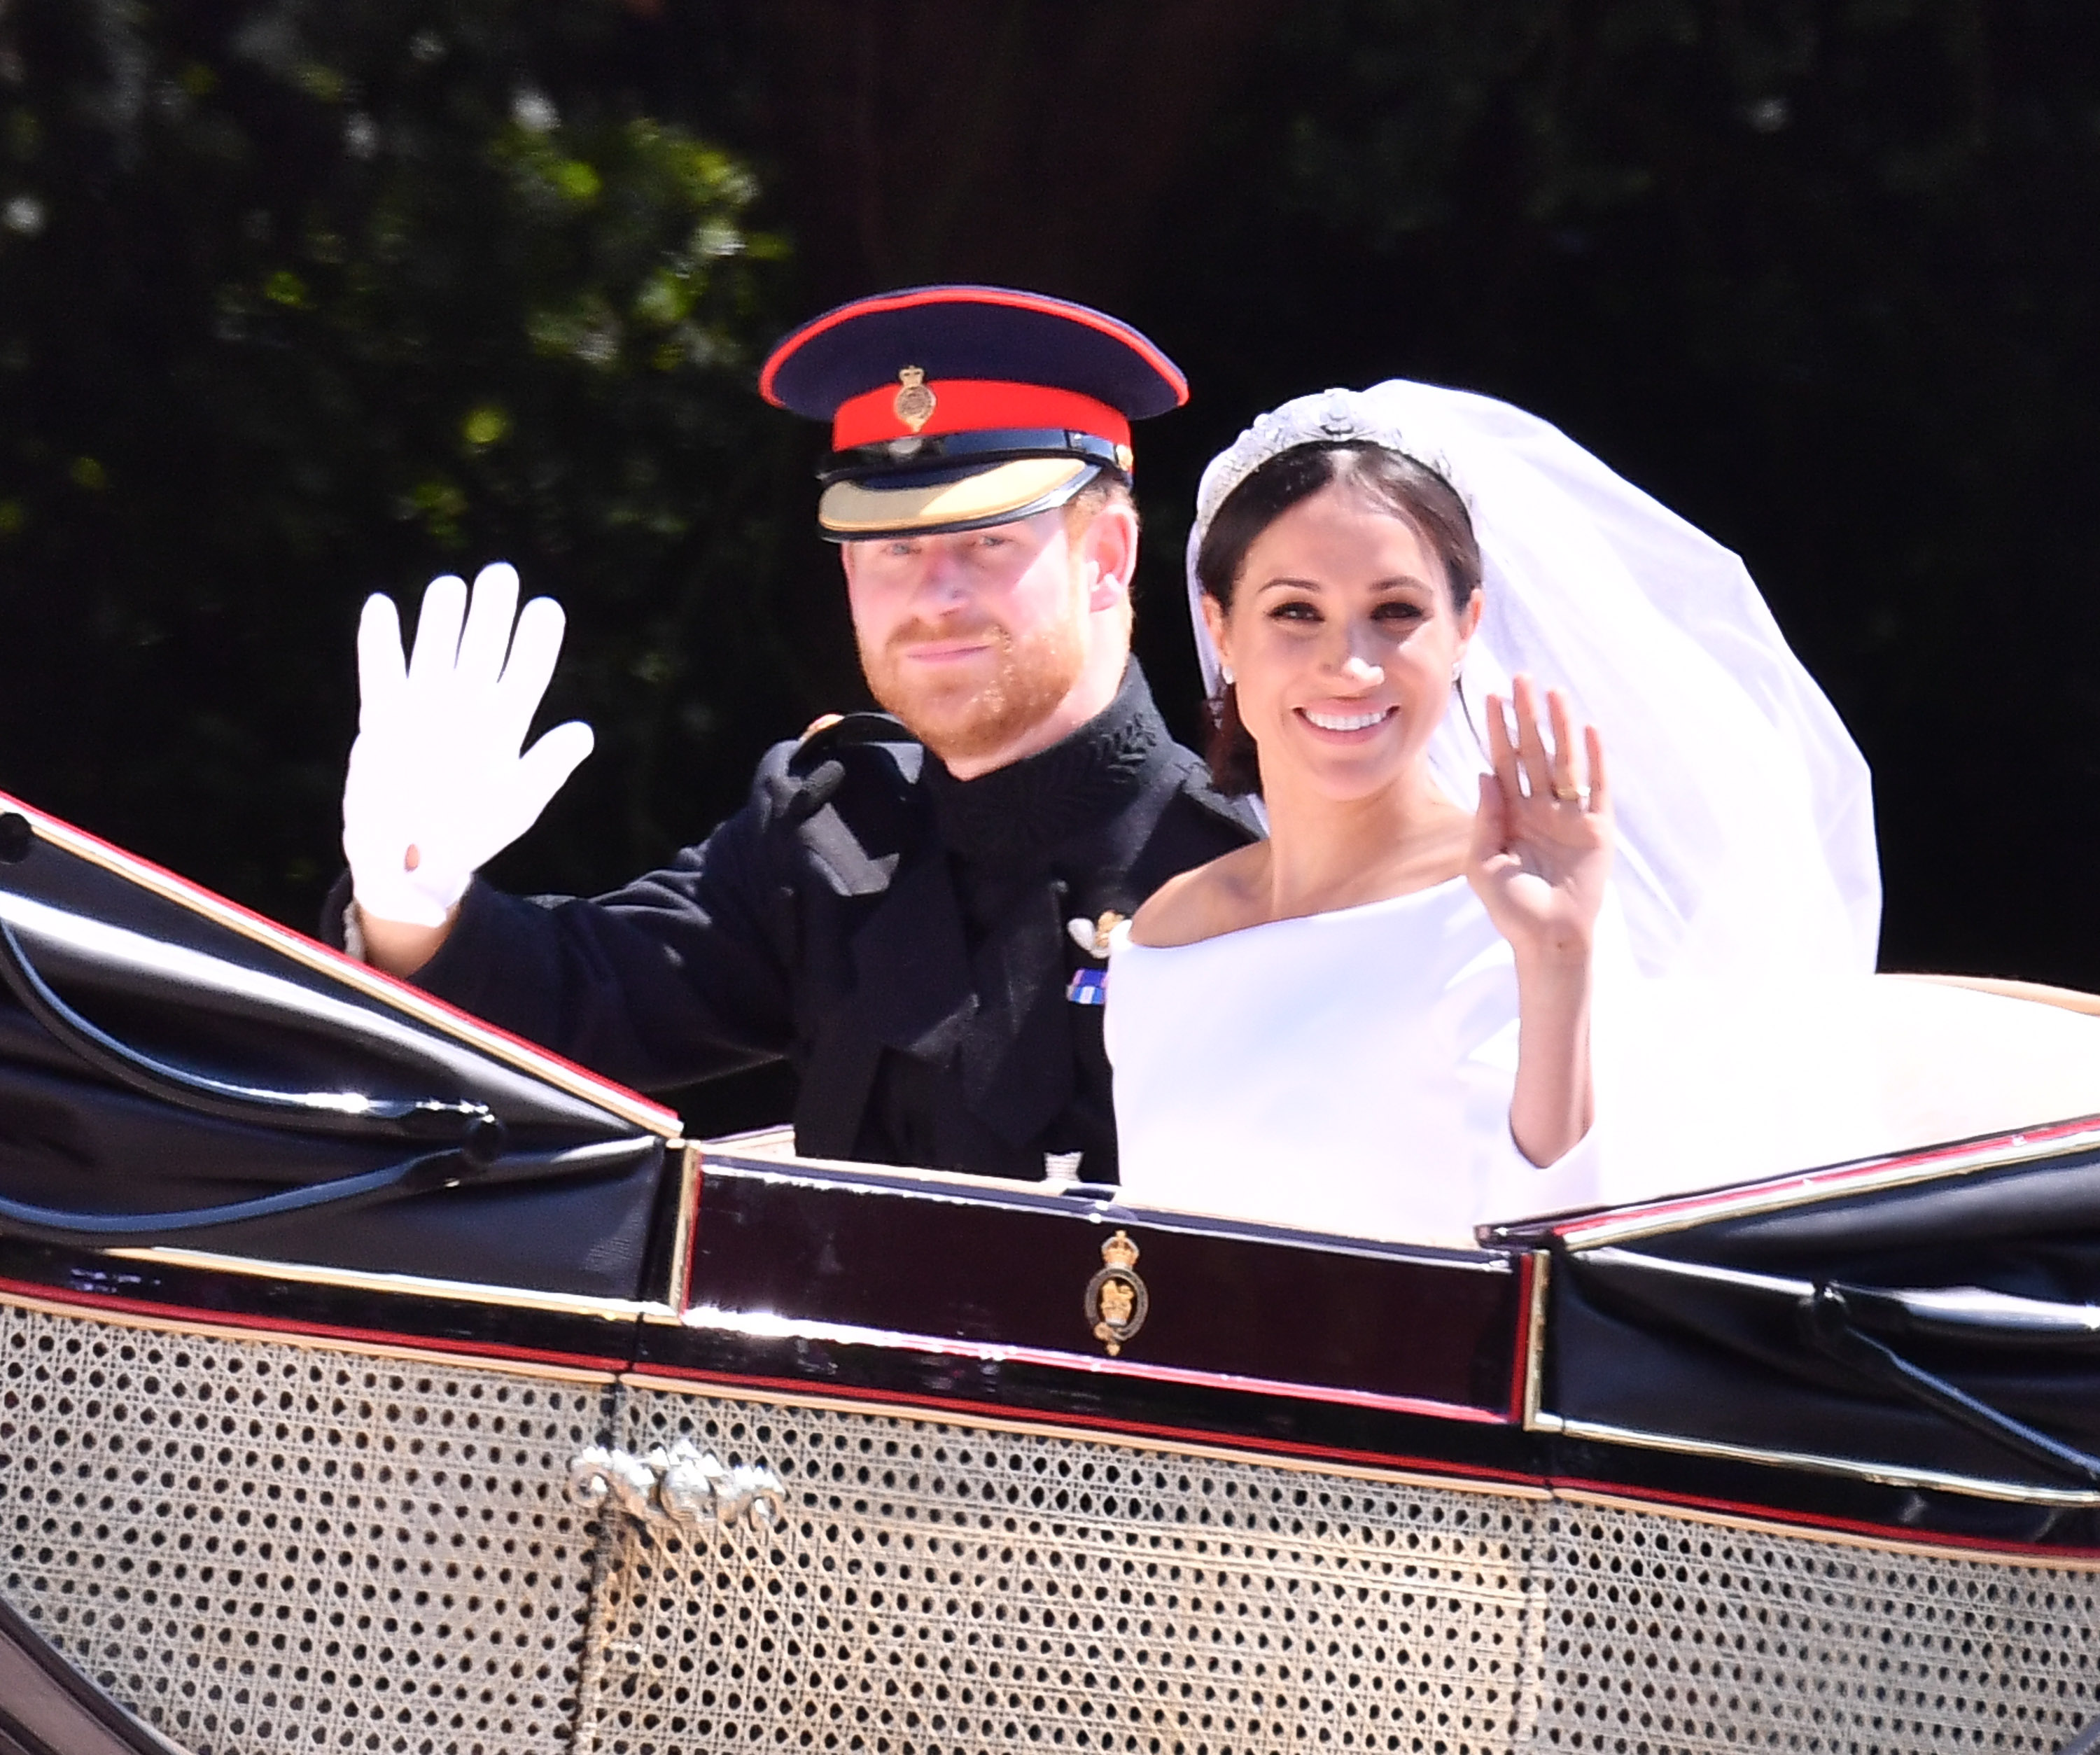 Prince Harry and Meghan Markle wave on carriage ride around Windsor after their wedding.